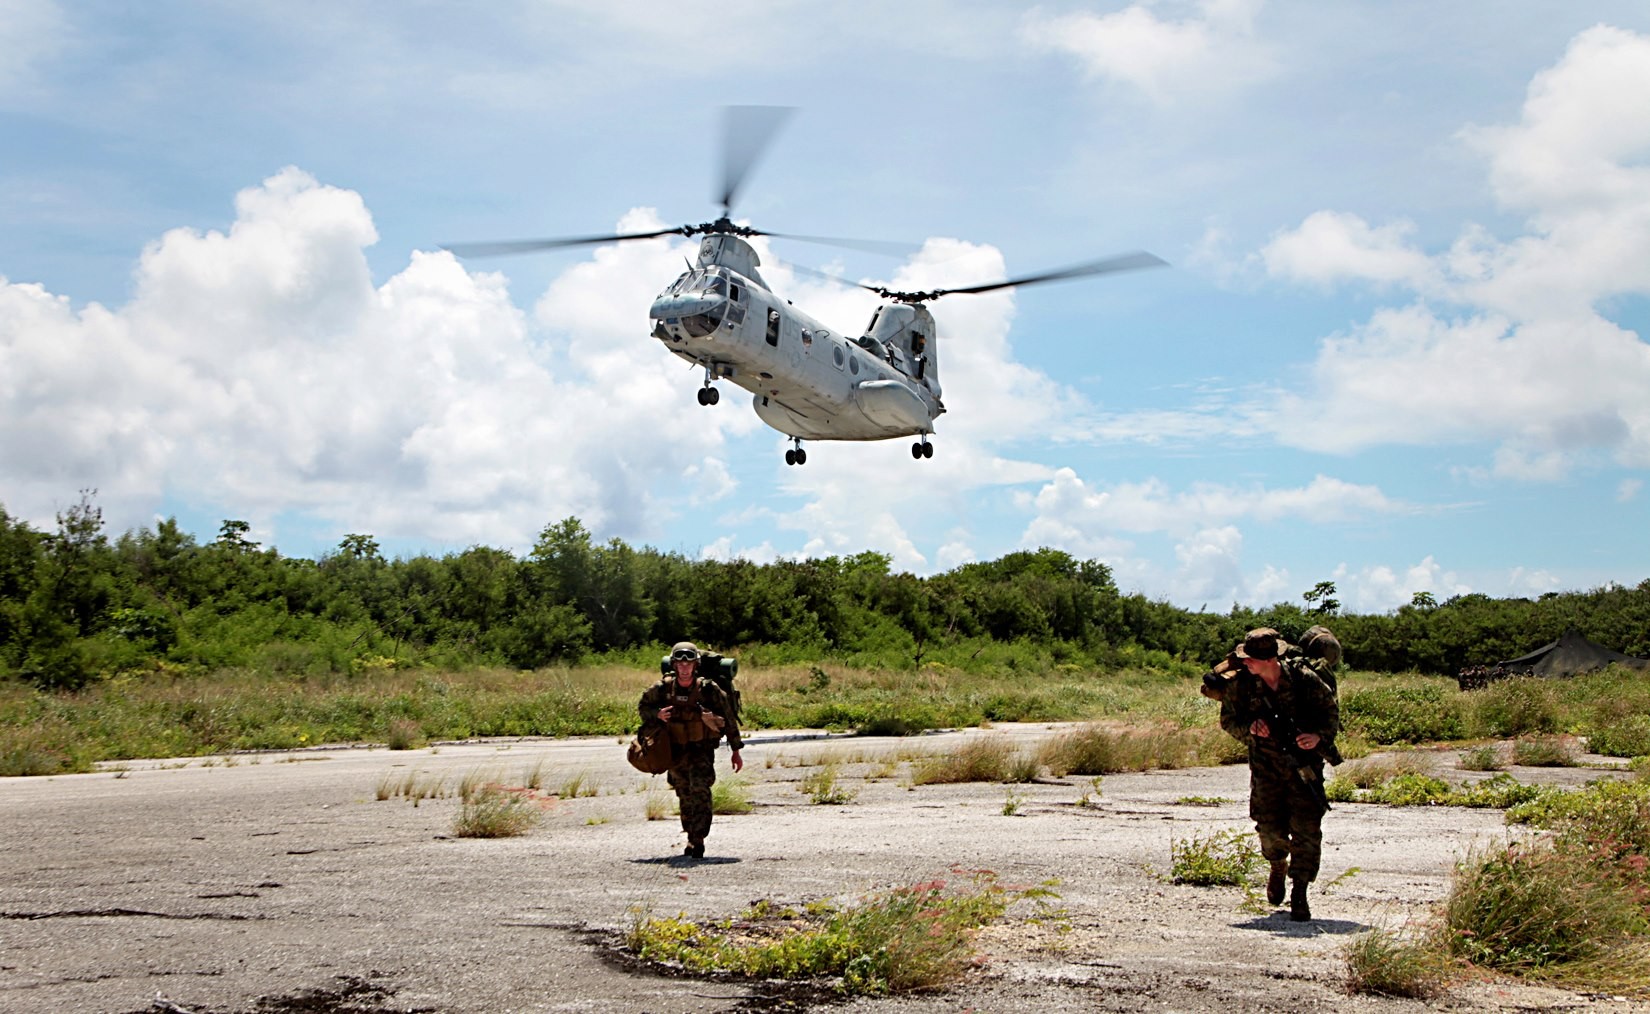 Guns and Military A CH-46 Sea Knight helicopter piloted by a U.S. Marine assigned to Marine Medium Helicopter Squadron 262, Aviation Combat Element, 31st Marine Expeditionary Unit (MEU) descend on the air field in order to extract Marines who have just completed a mechaniz